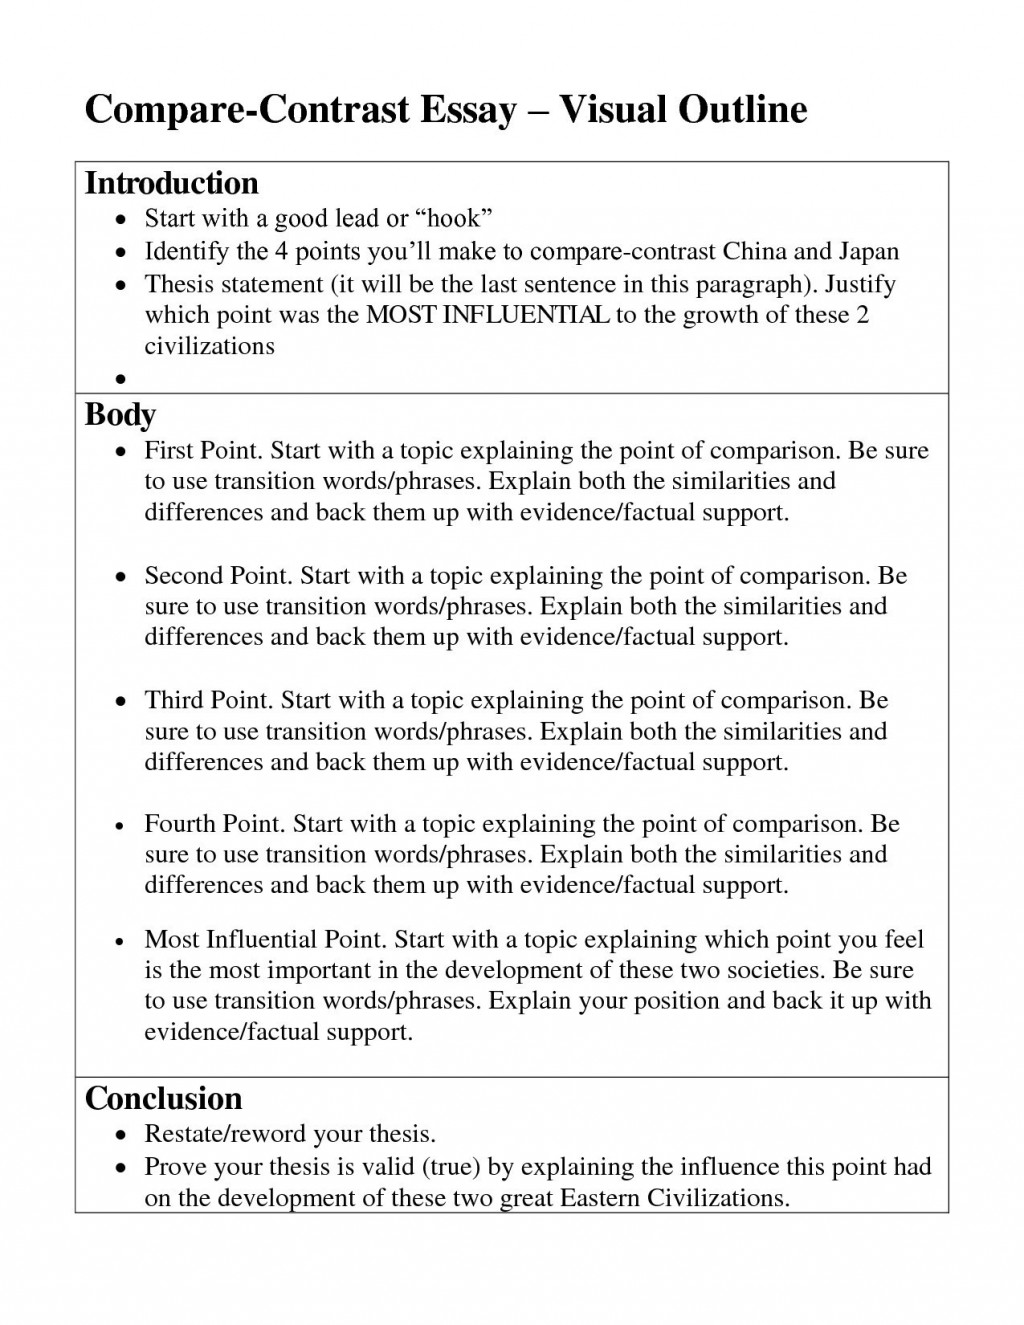 014 Good Hook For An Essay Writing Hooks Worksheet Refrence Laws Fresh How To Write Ess Argumentative Narrative The Best College Sentence Informative About Yourself Impressive A Odyssey Large